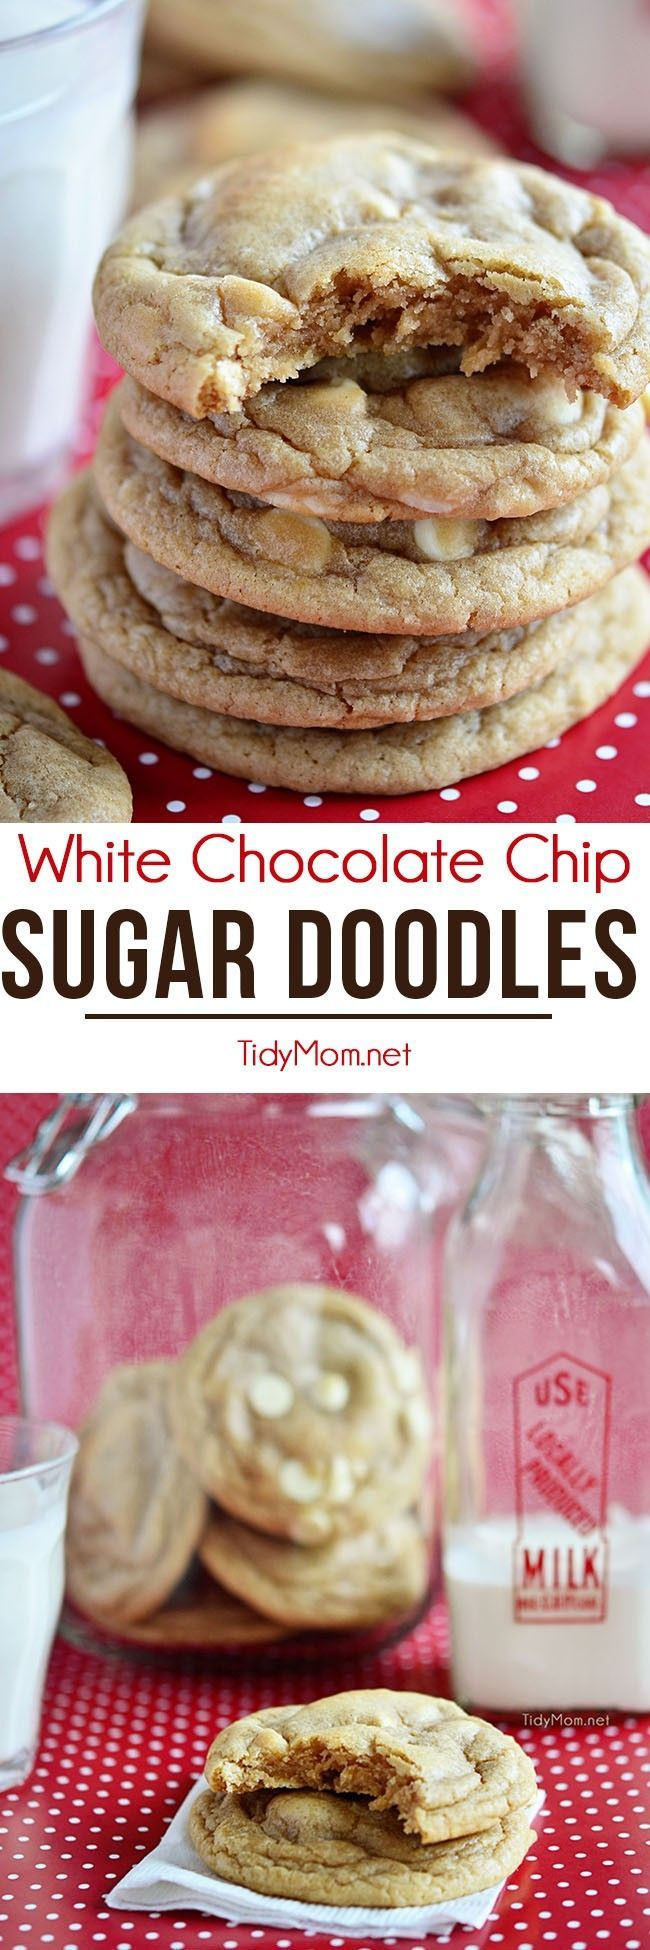 White Chocolate Chip Sugar Doodle Cookies are the perfect mashup of our favorite cookies; the buttery goodness of a sugar cookie with the chewy texture of a snickerdoodle. Sugar doodle cookie recipe at TidyMom.net